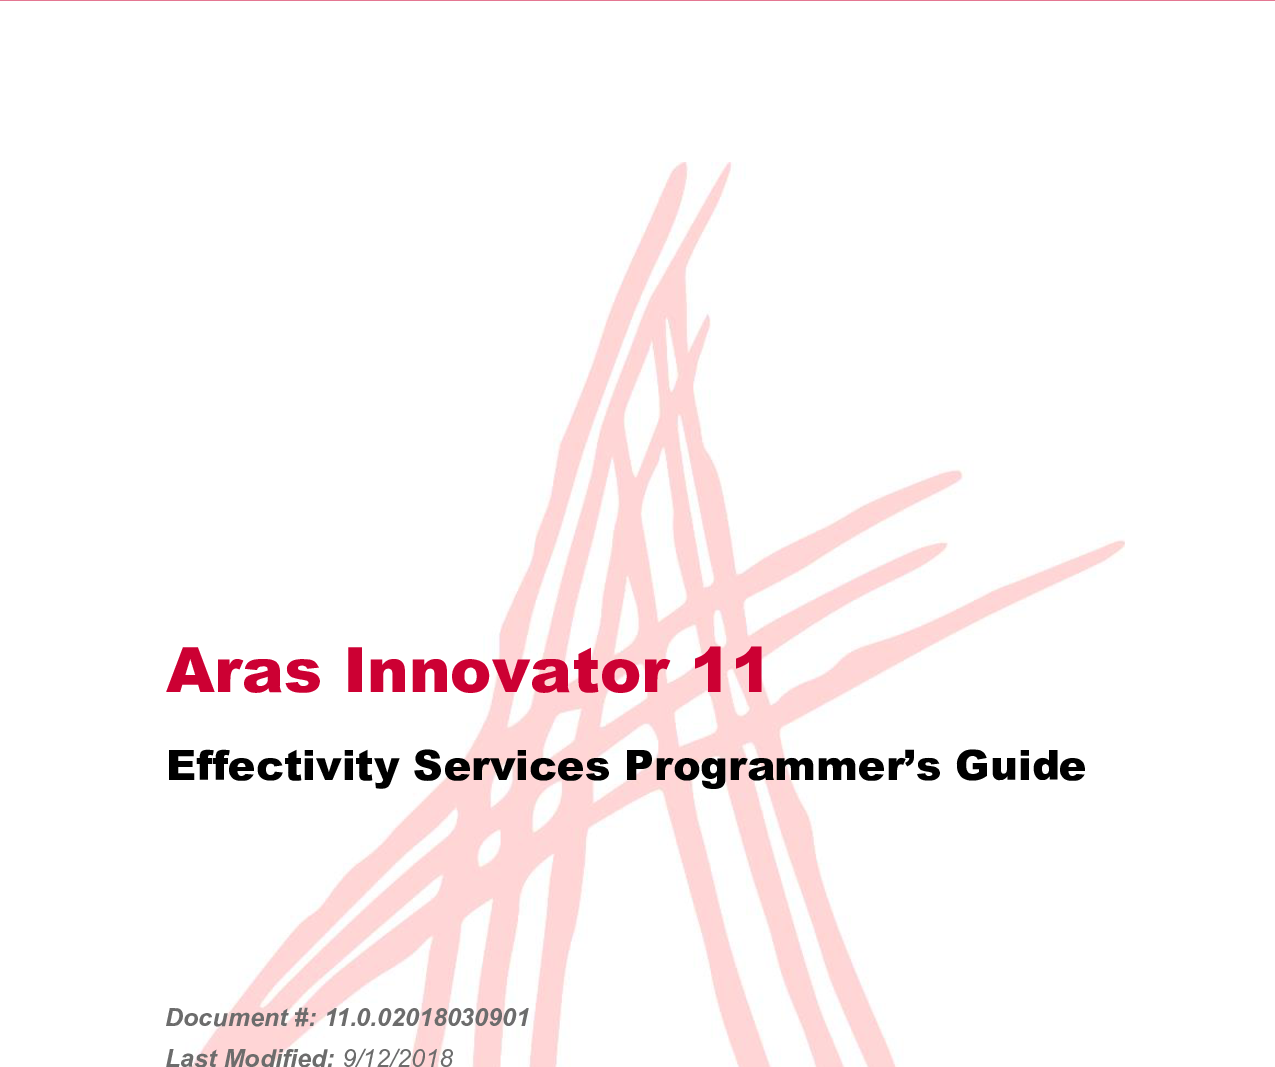 Aras Innovator 11 0 Effectivity Services Programmers Guide